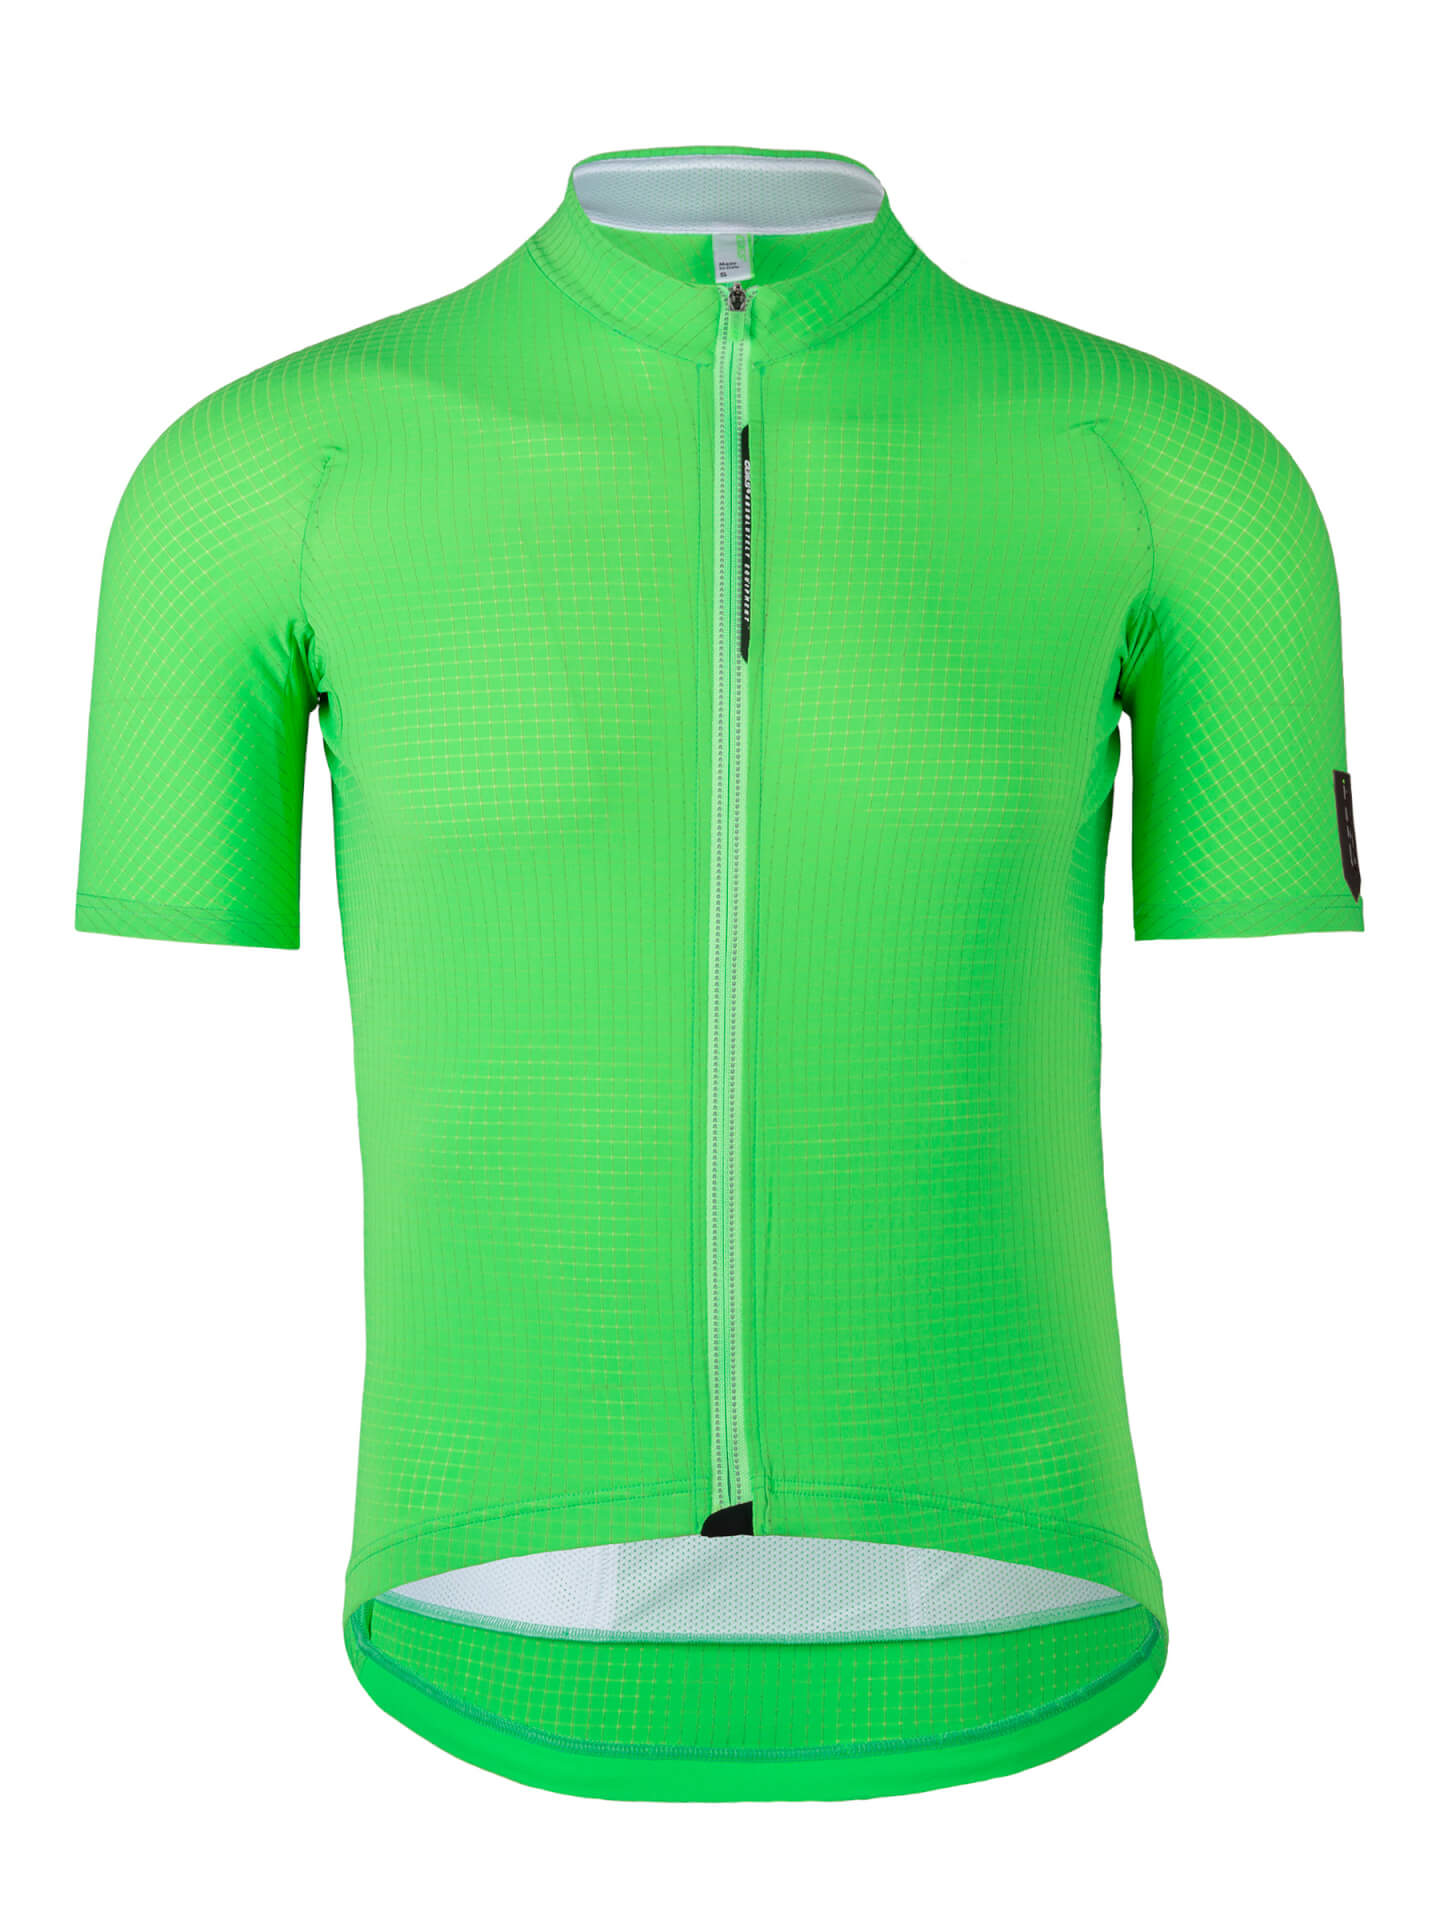 Mens cycling jersey L1 Pinstripe Q36.5 green fluo